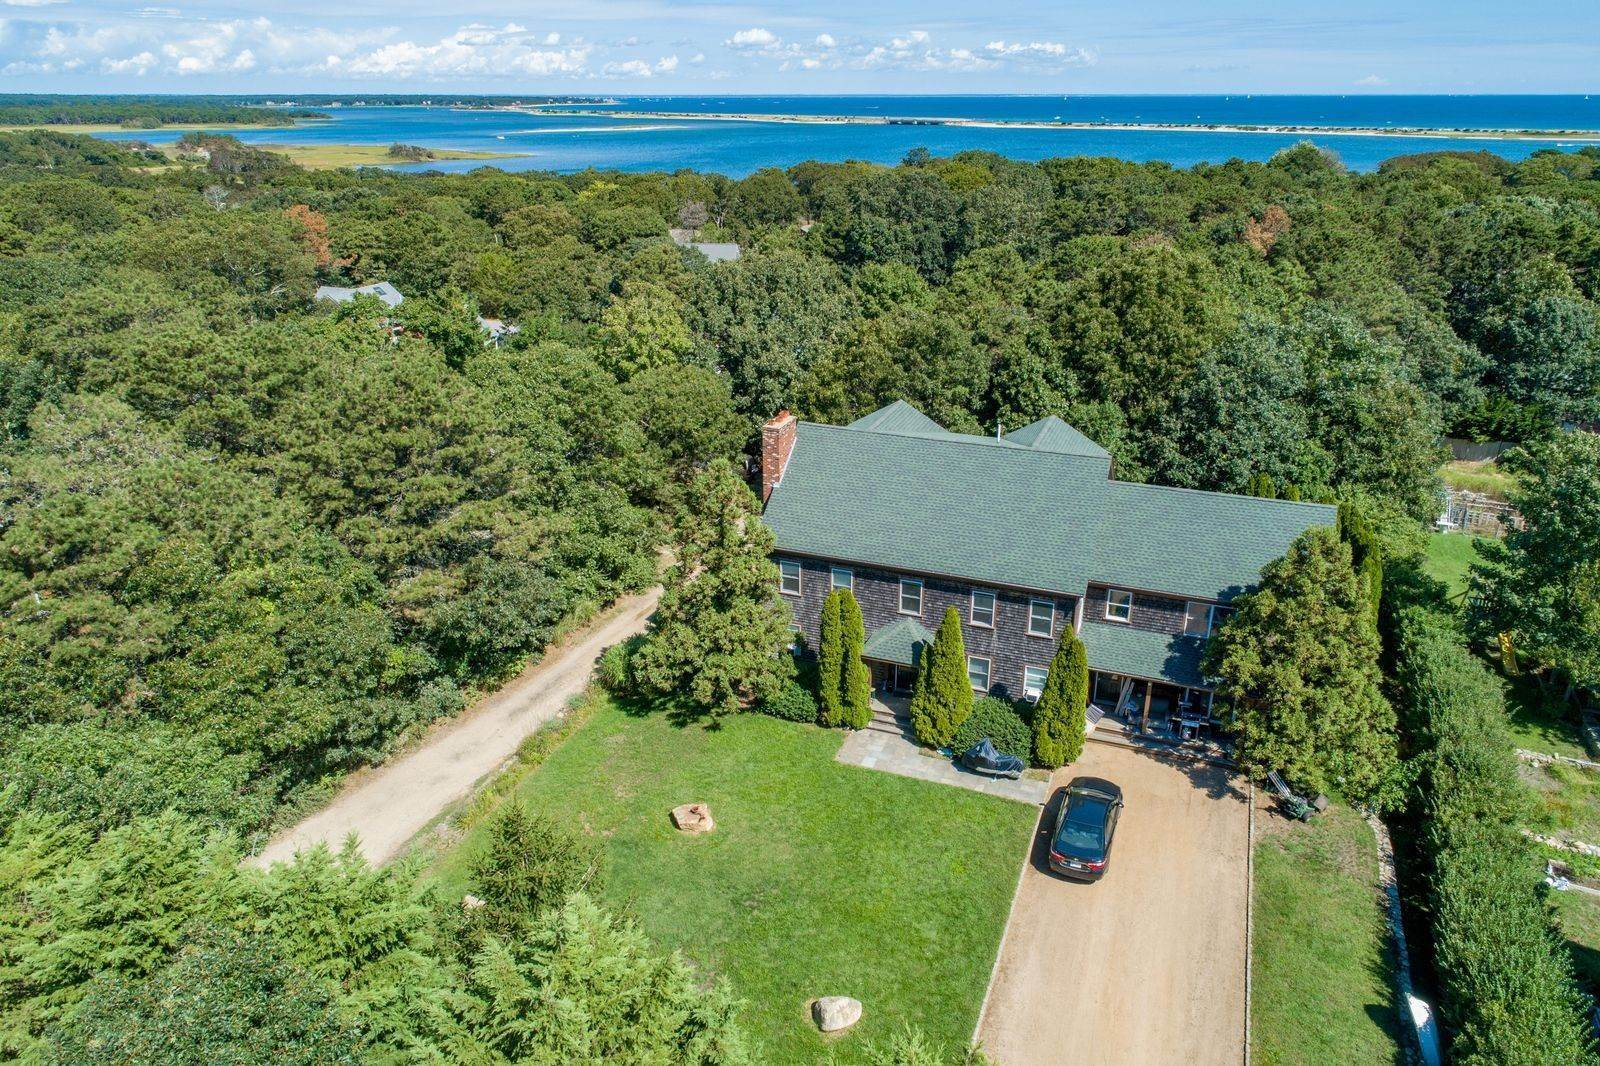 Single Family Home for Sale at 81 12th Street North, Edgartown, Massachusetts,02539 United States